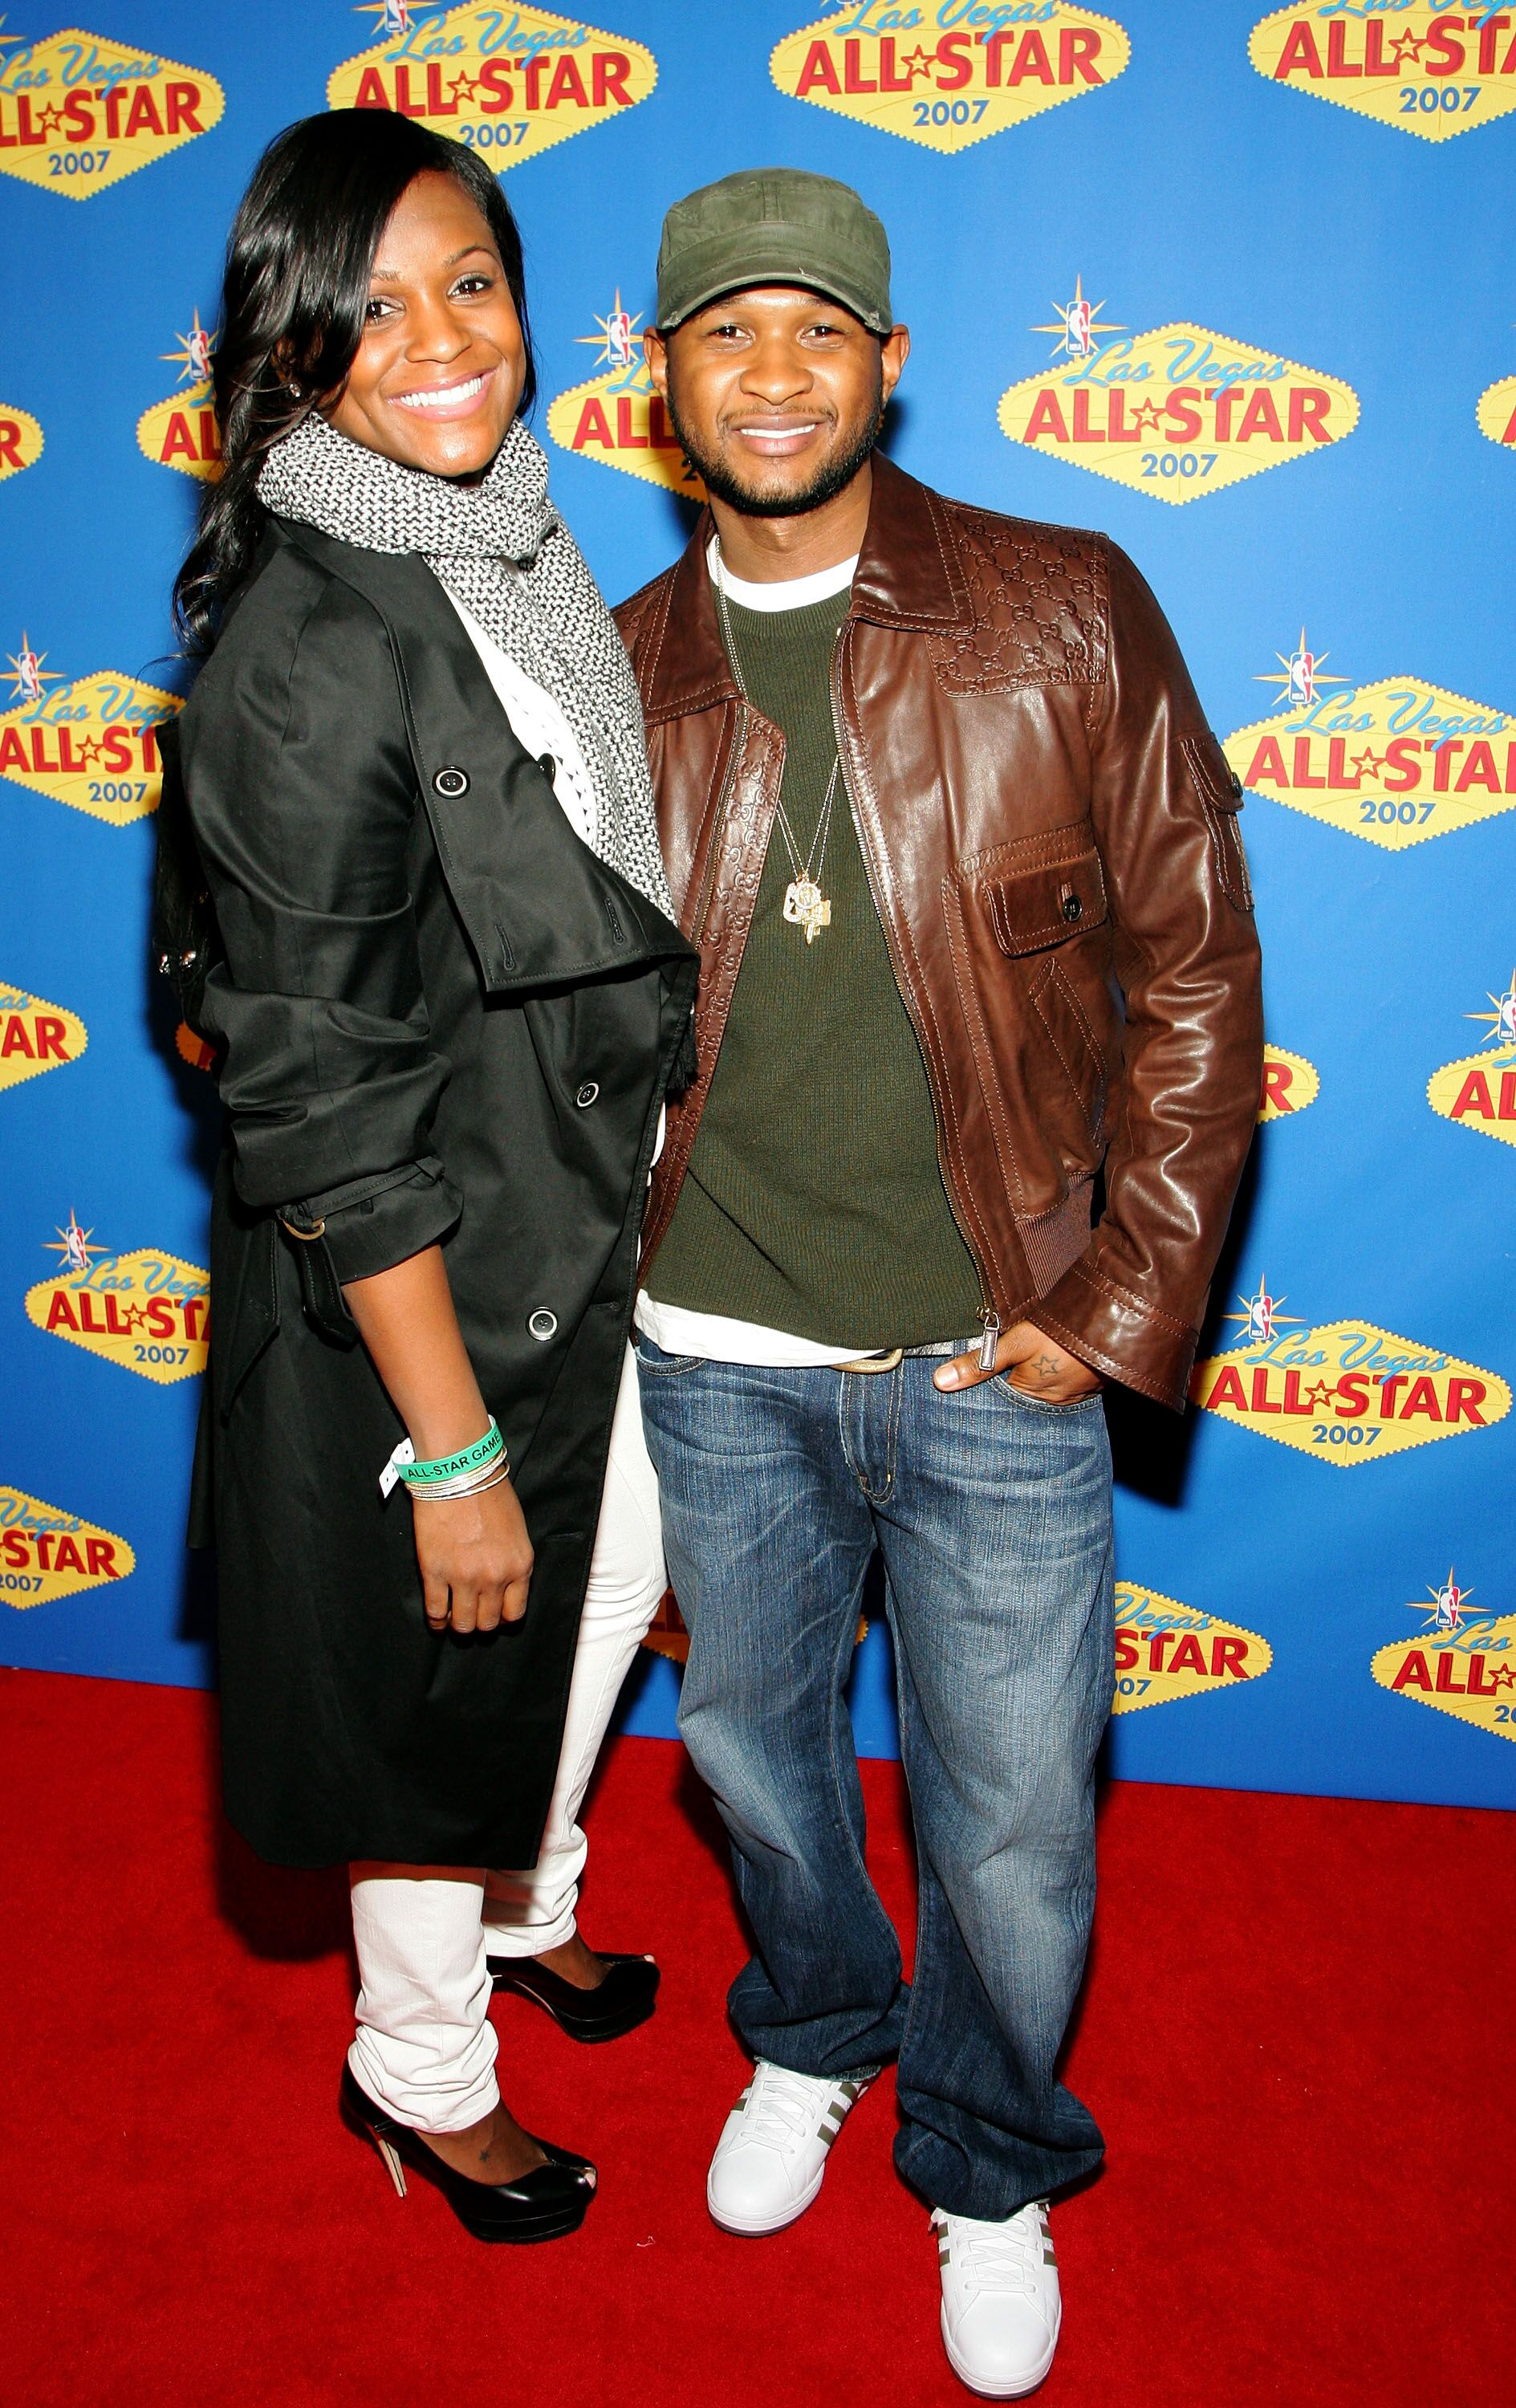 Usher and Tameka Foster at the 2007 NBA All-Star Game in Las Vegas in 2007 | Source: Getty Images